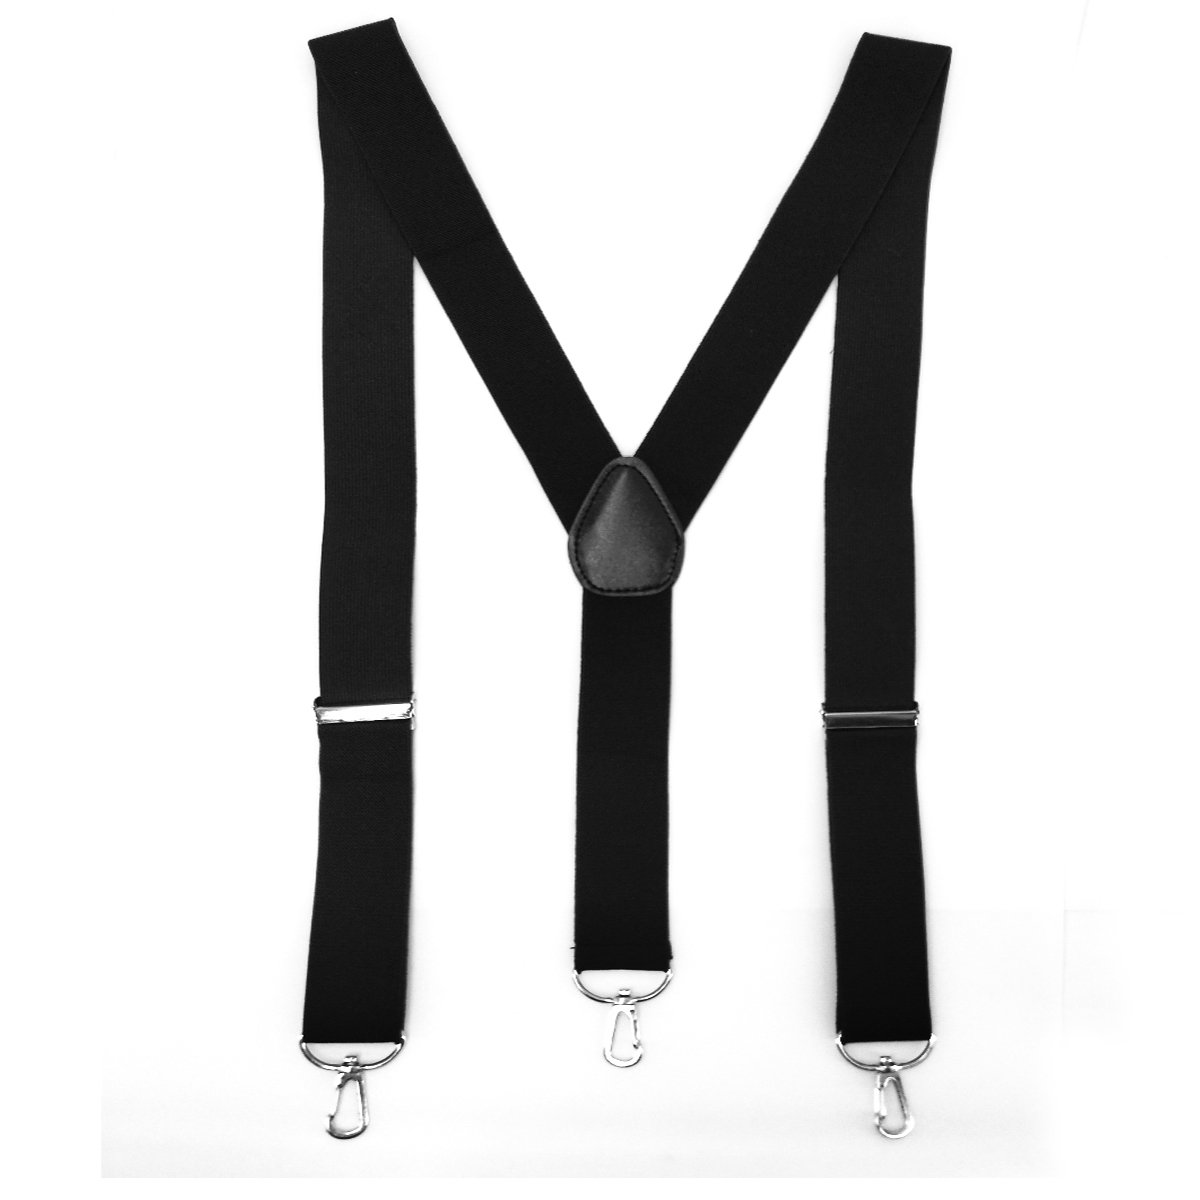 Utop Suspenders for Men Elastic Y-back 3 Clips Button Convertible Ends Adjustable (3 clips convertible-end)